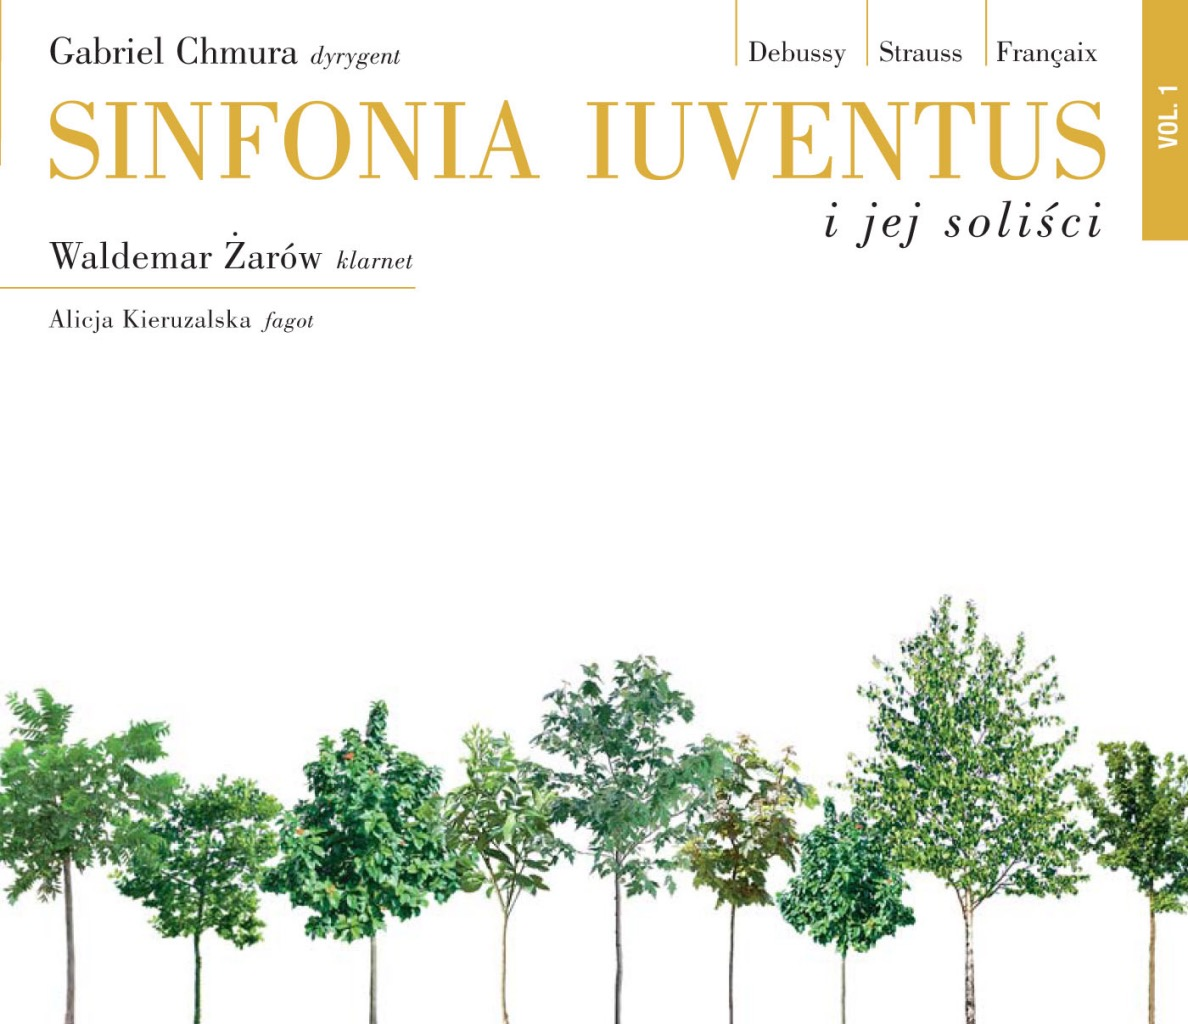 Sinfonia Iuventus and its soloists vol I